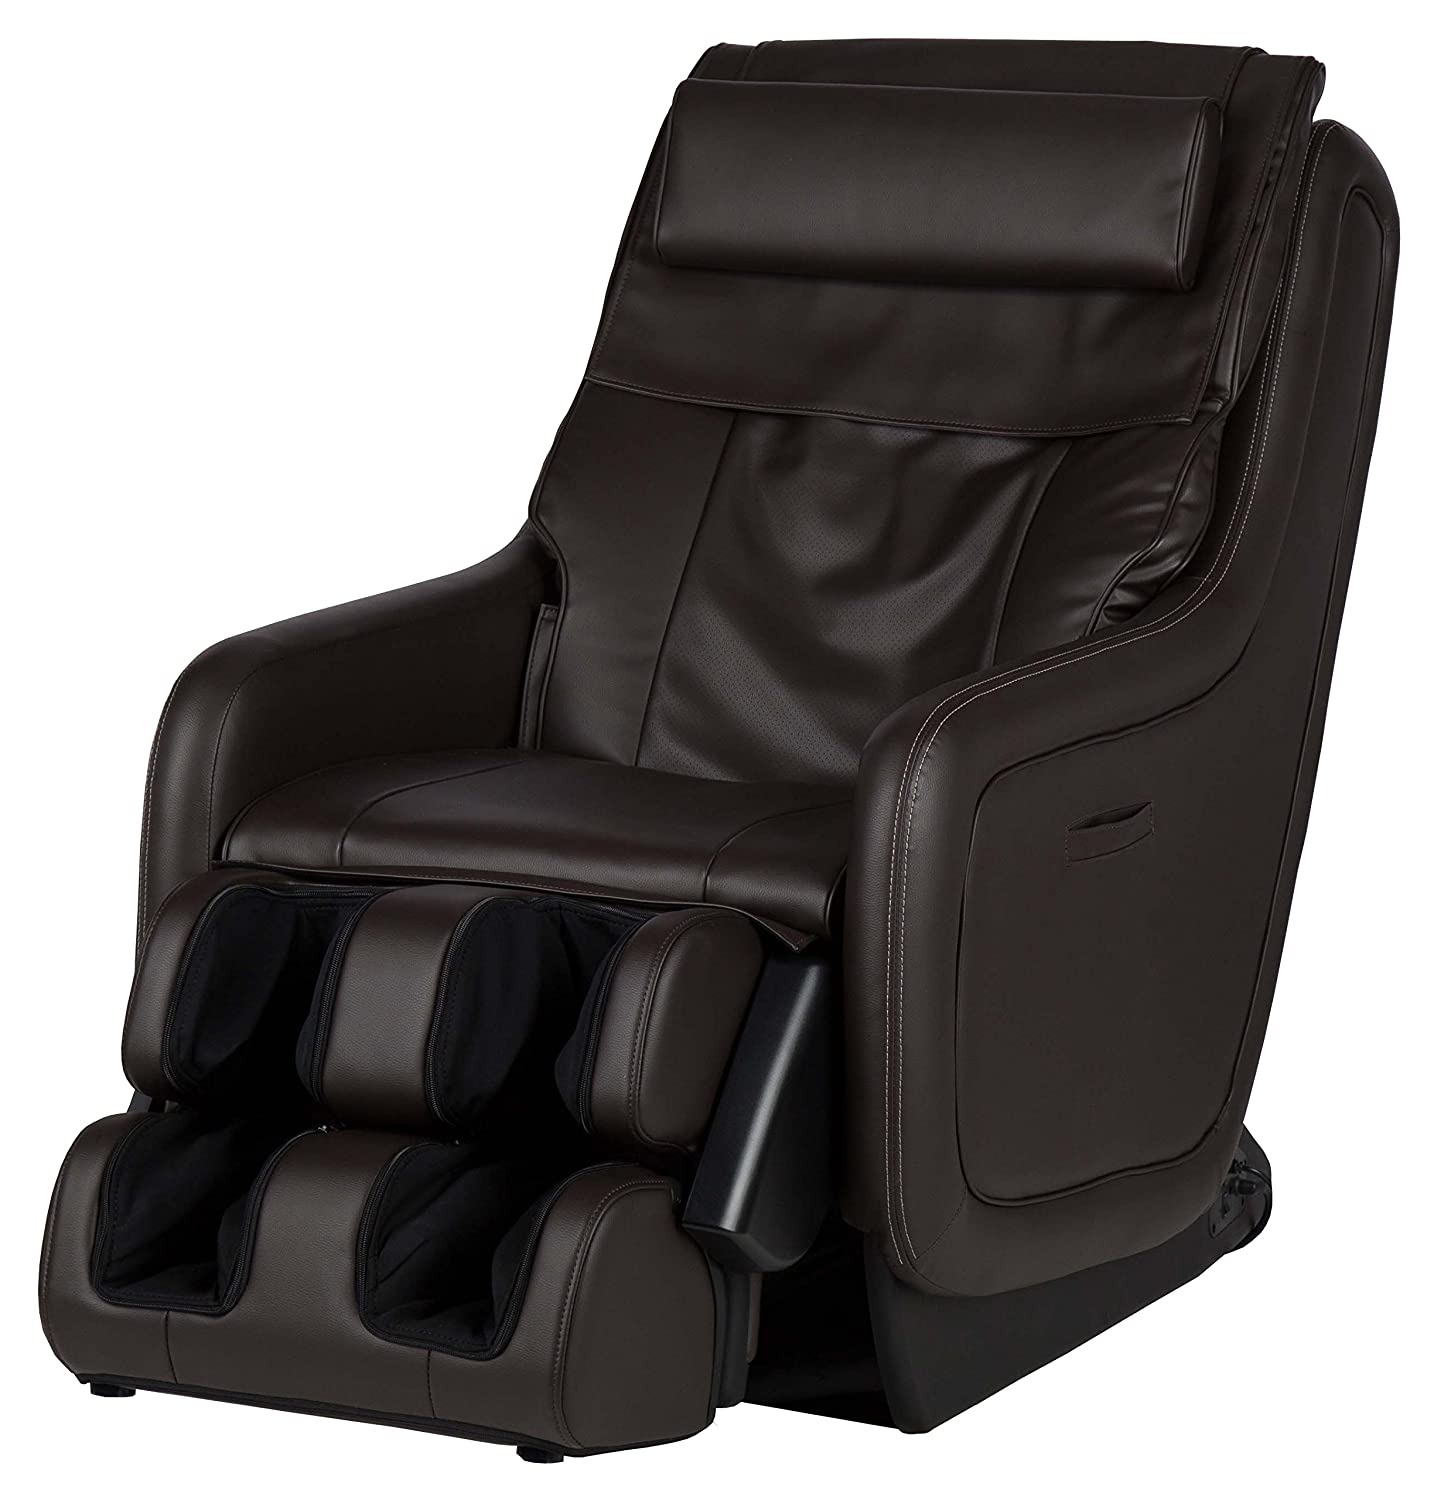 "Amazon ""ZeroG 5 0"" Premium Full Body Zero Gravity Massage"